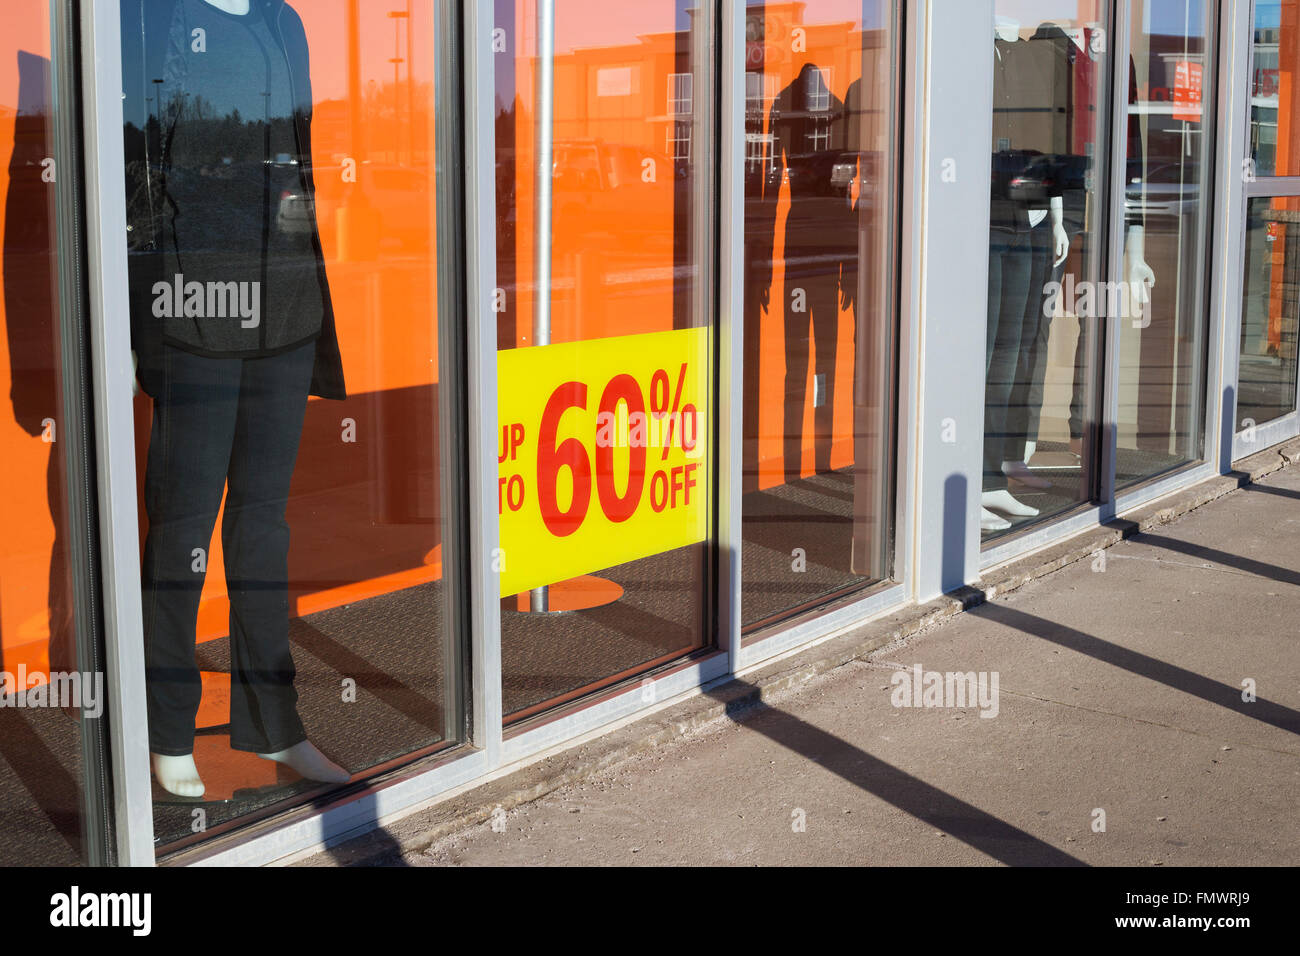 Sale sign in store window of suburban shopping centre - Stock Image